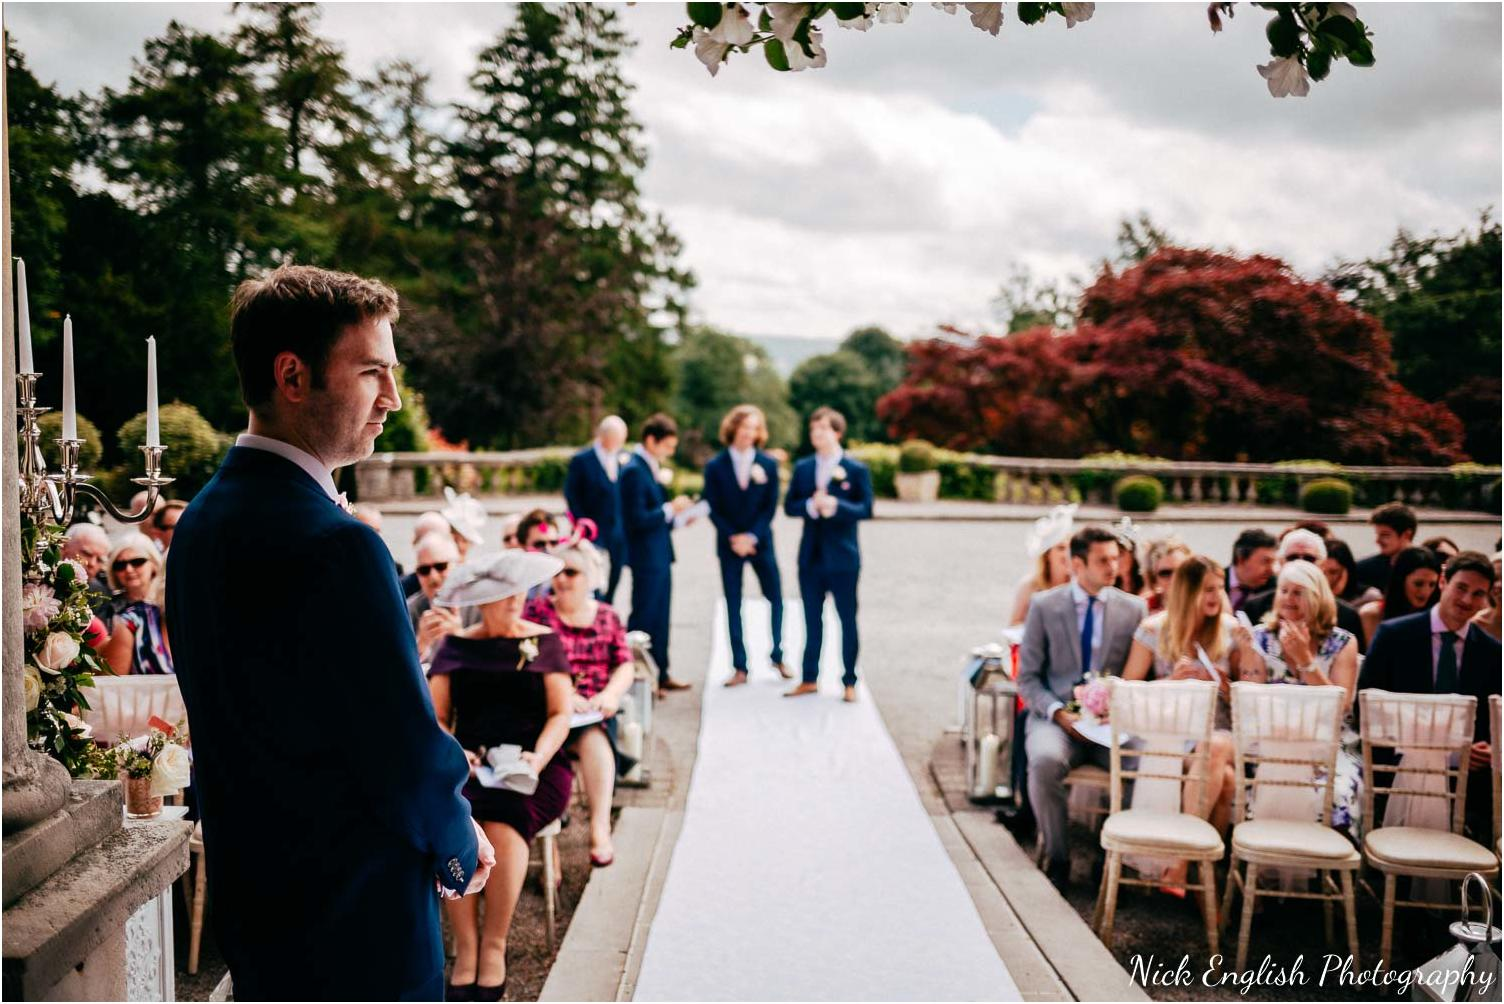 Eaves_Hall_Outdoor_Wedding_Photographs-64.jpg